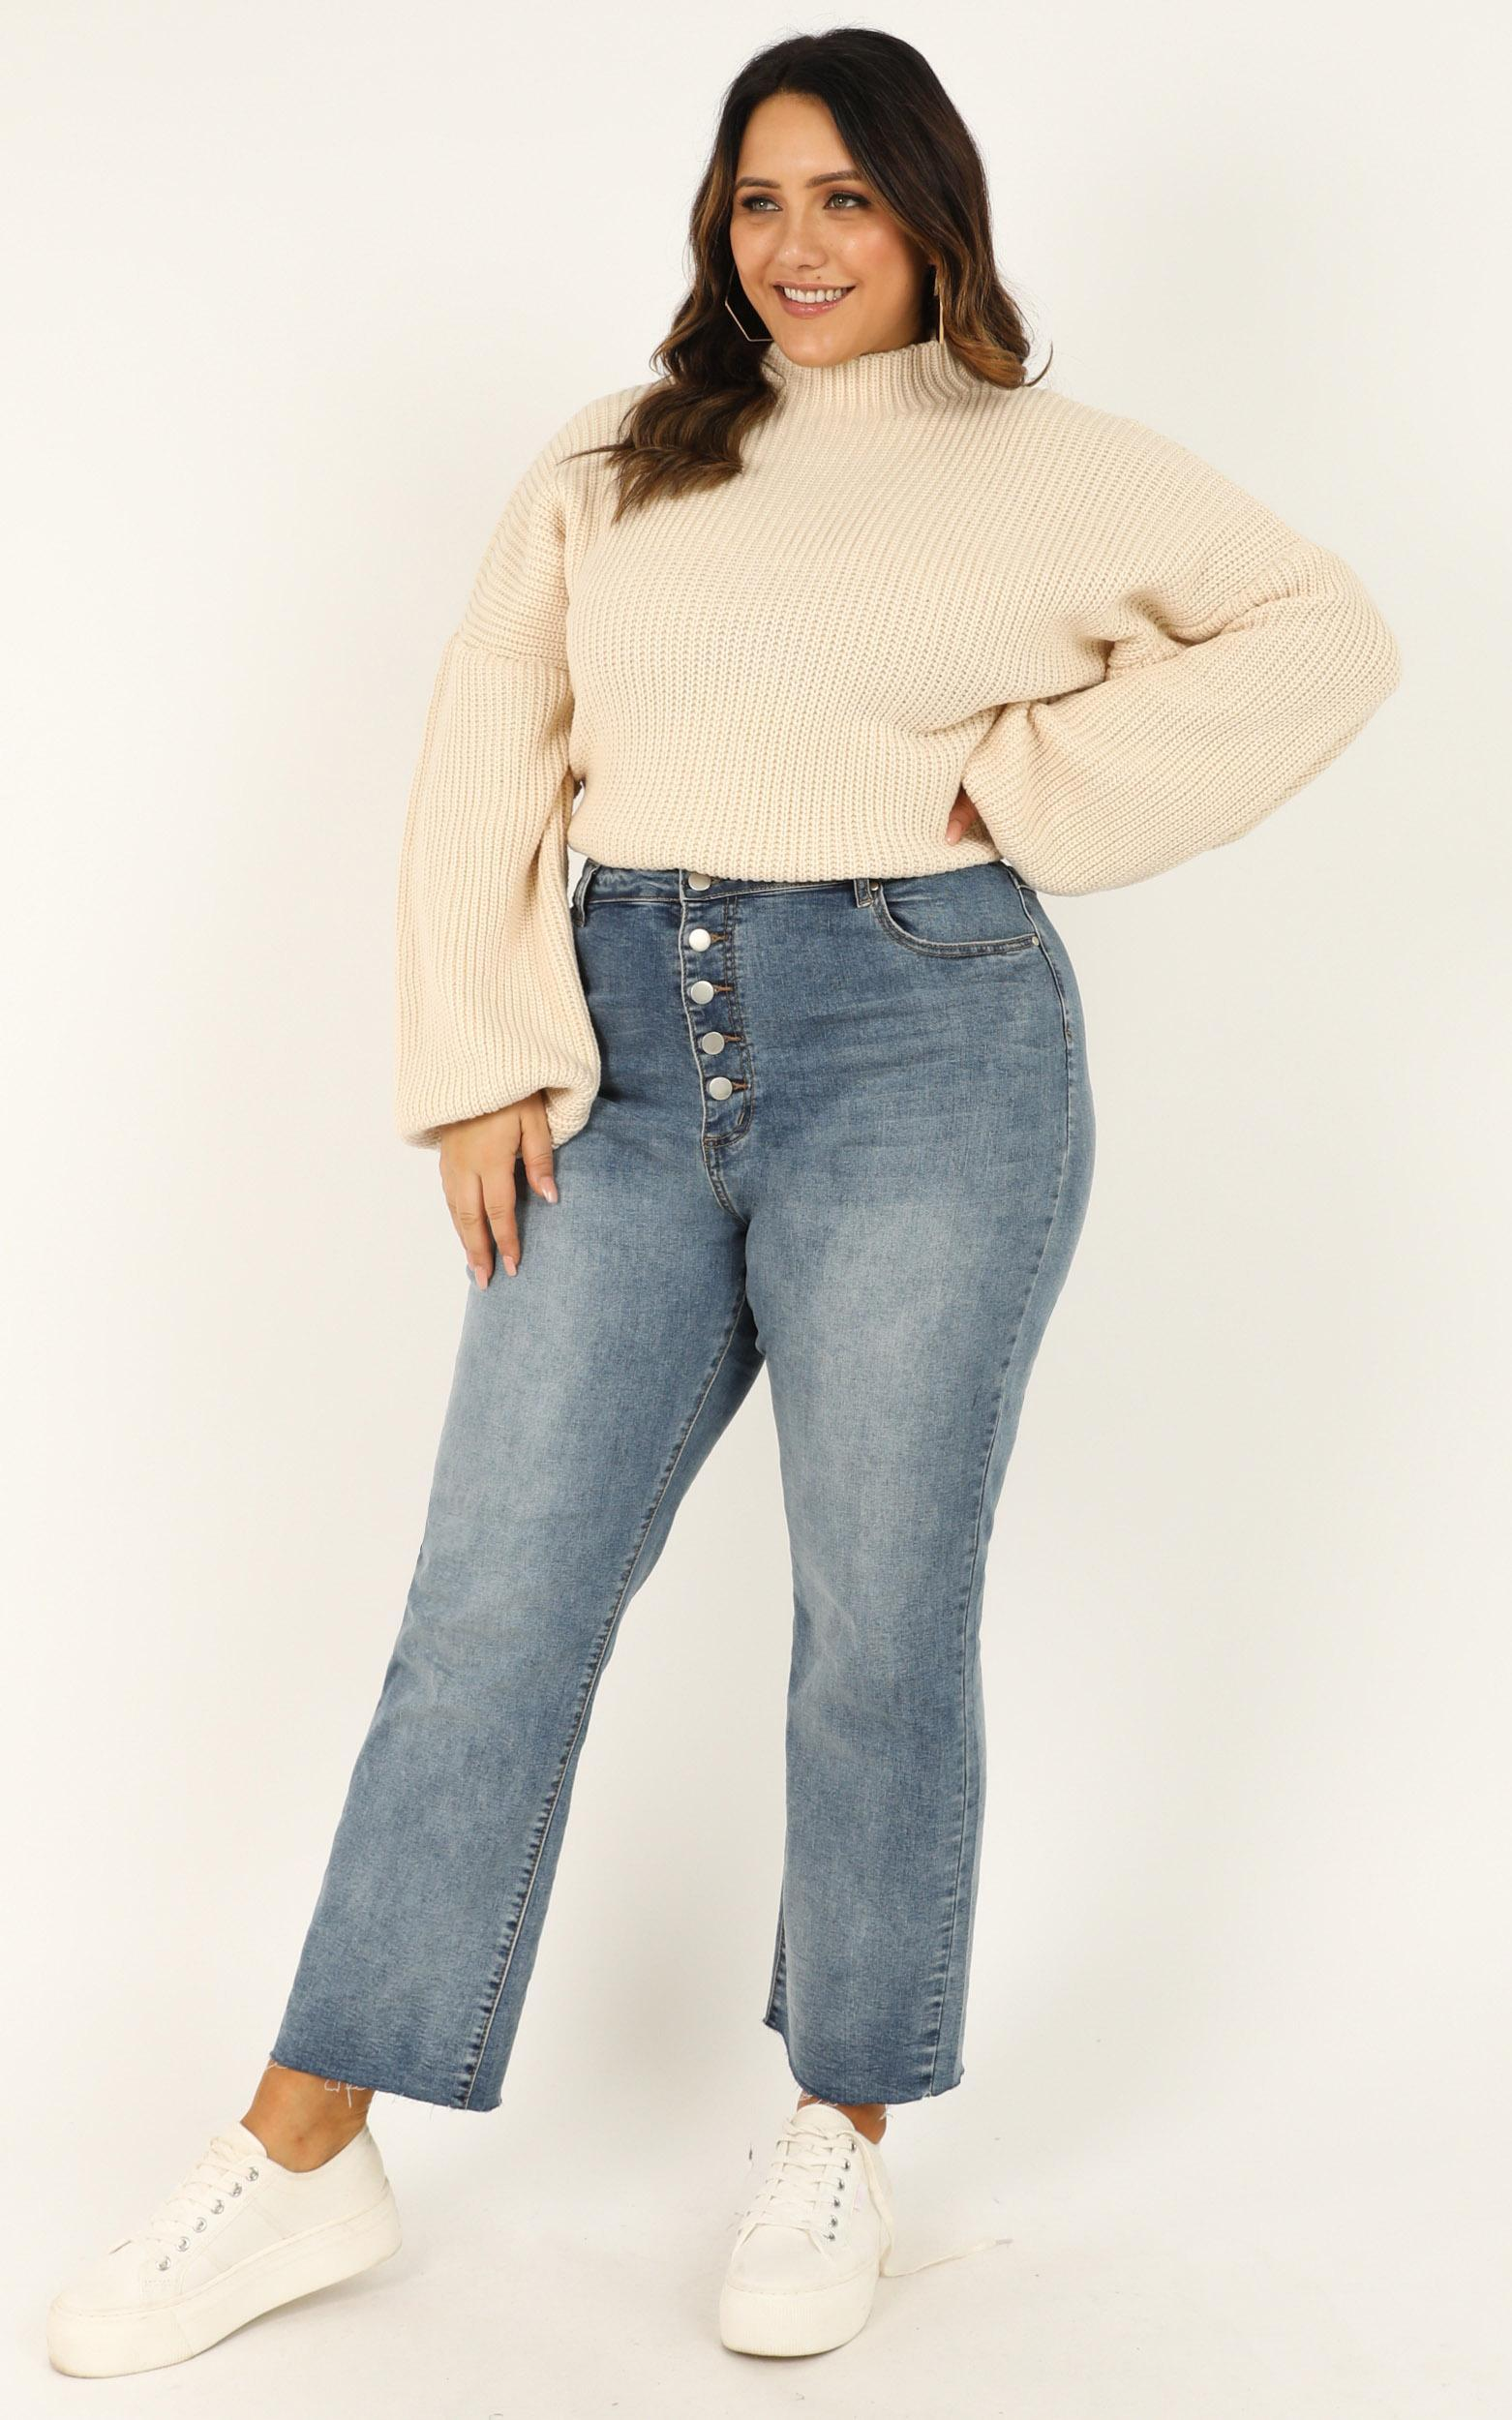 I Feel Love Oversized Knit Jumper In Cream, CRE1, hi-res image number null